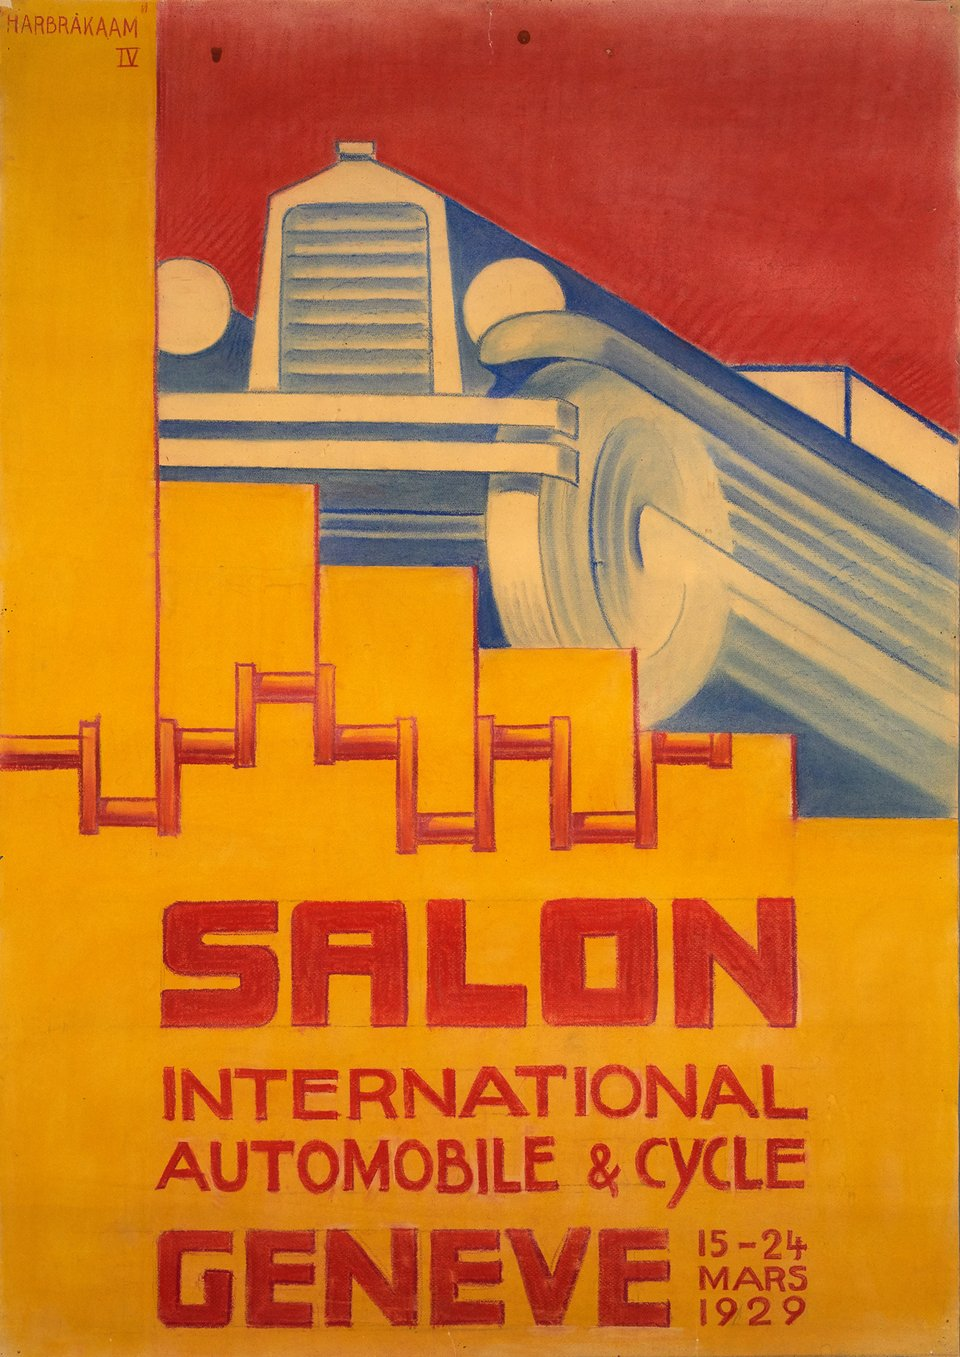 Salon International Automobile et Cycle Genève – Affiche ancienne – HARBRAKAAM – 1929